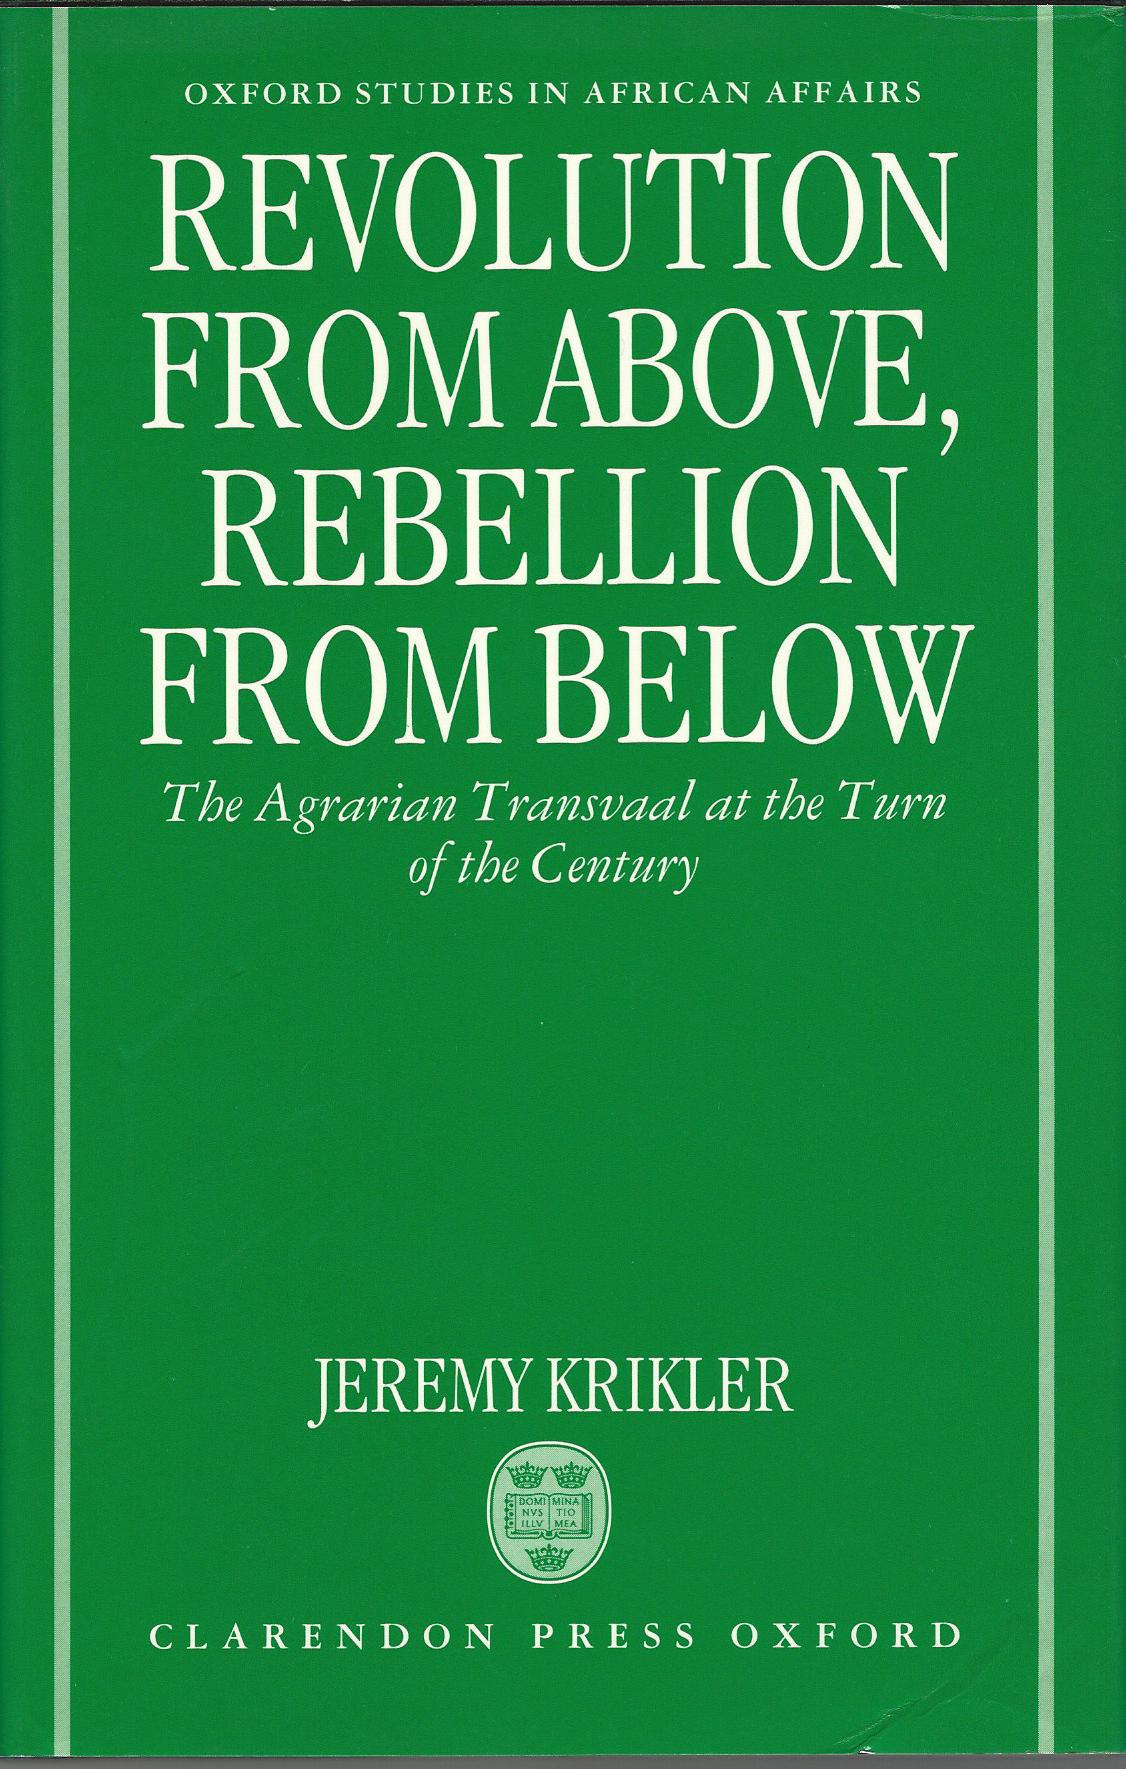 Image for Revolution from Above, Rebellion from Below: The Agrarian Transvaal at the Turn of the Century (Oxford Studies in African Affairs)